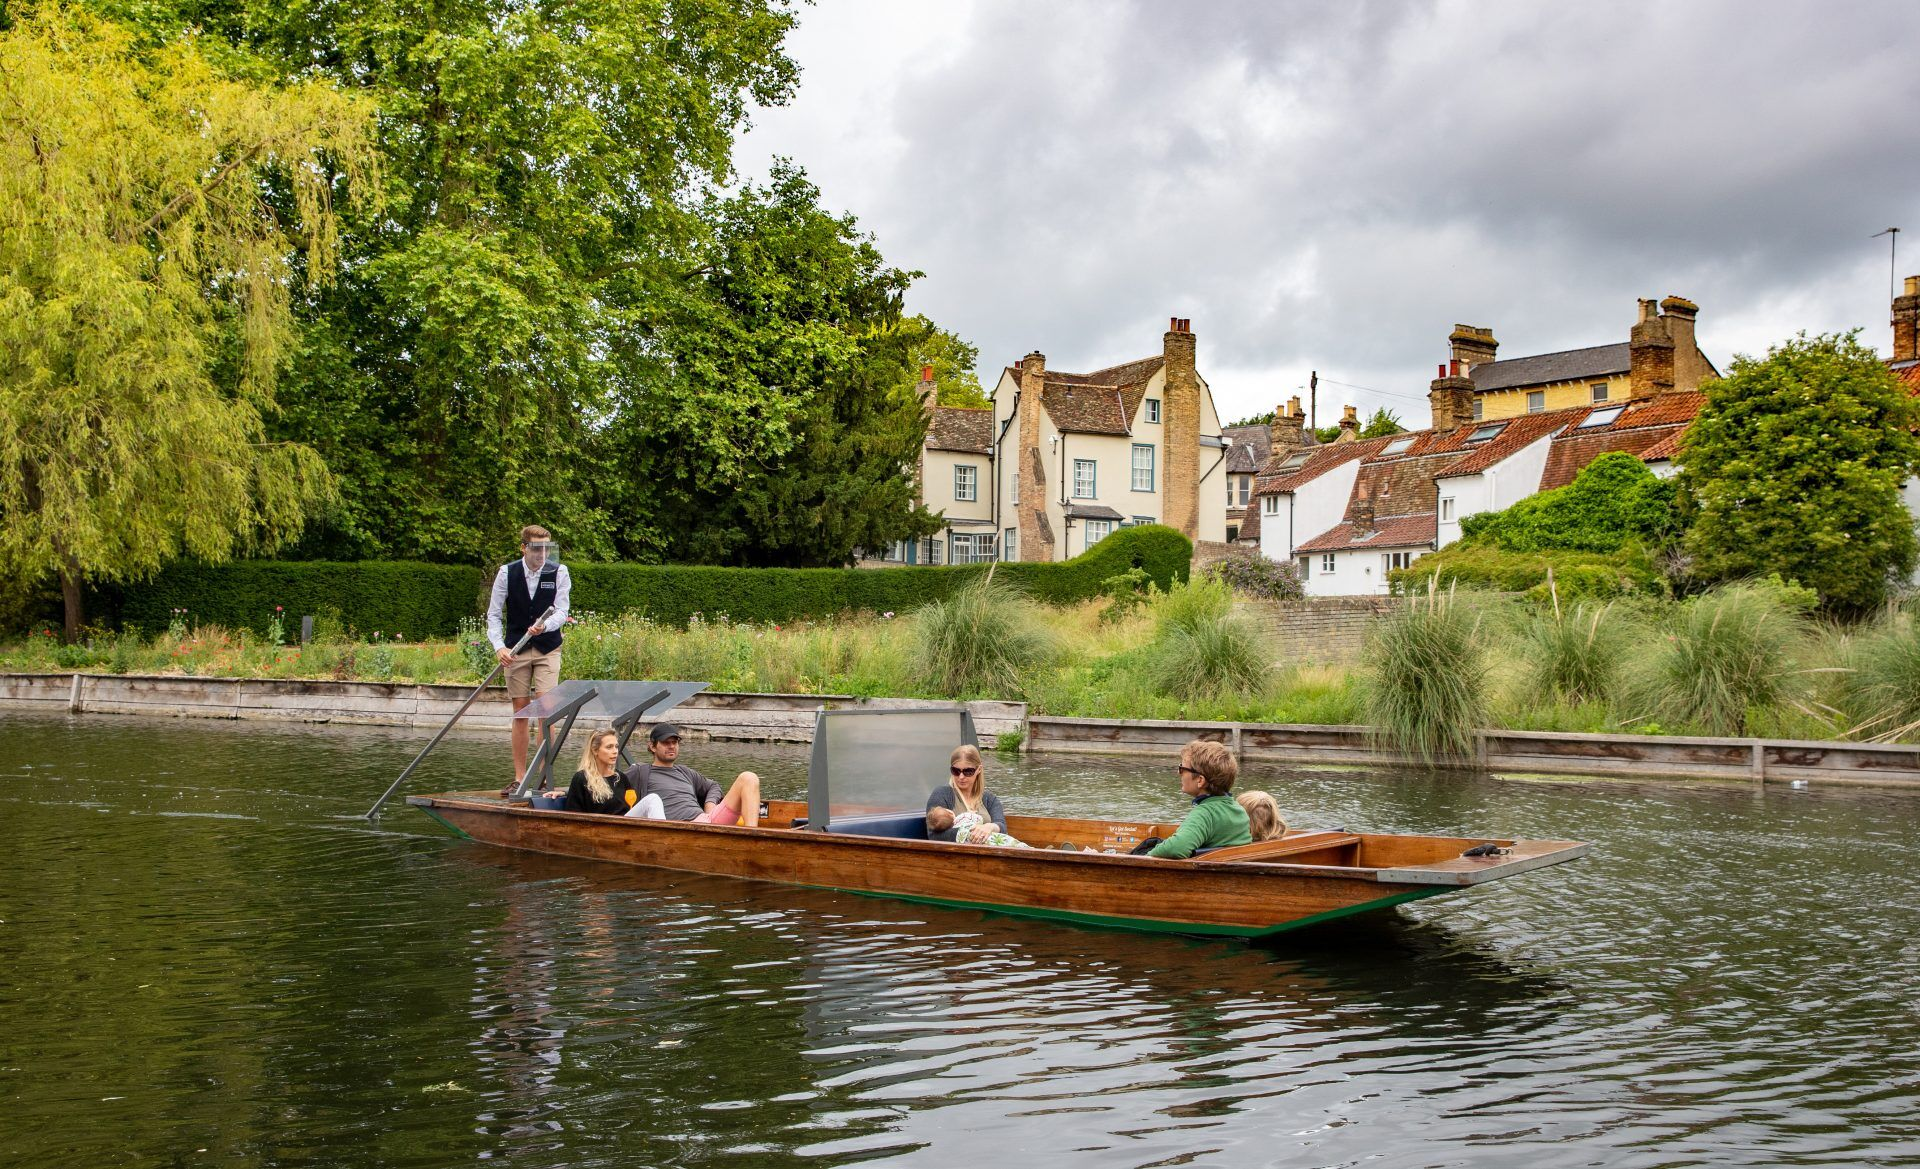 COVID-19, Punting Cambridge COVID-19 Punt Tours, Punting in Cambridge, Punting Cambridge